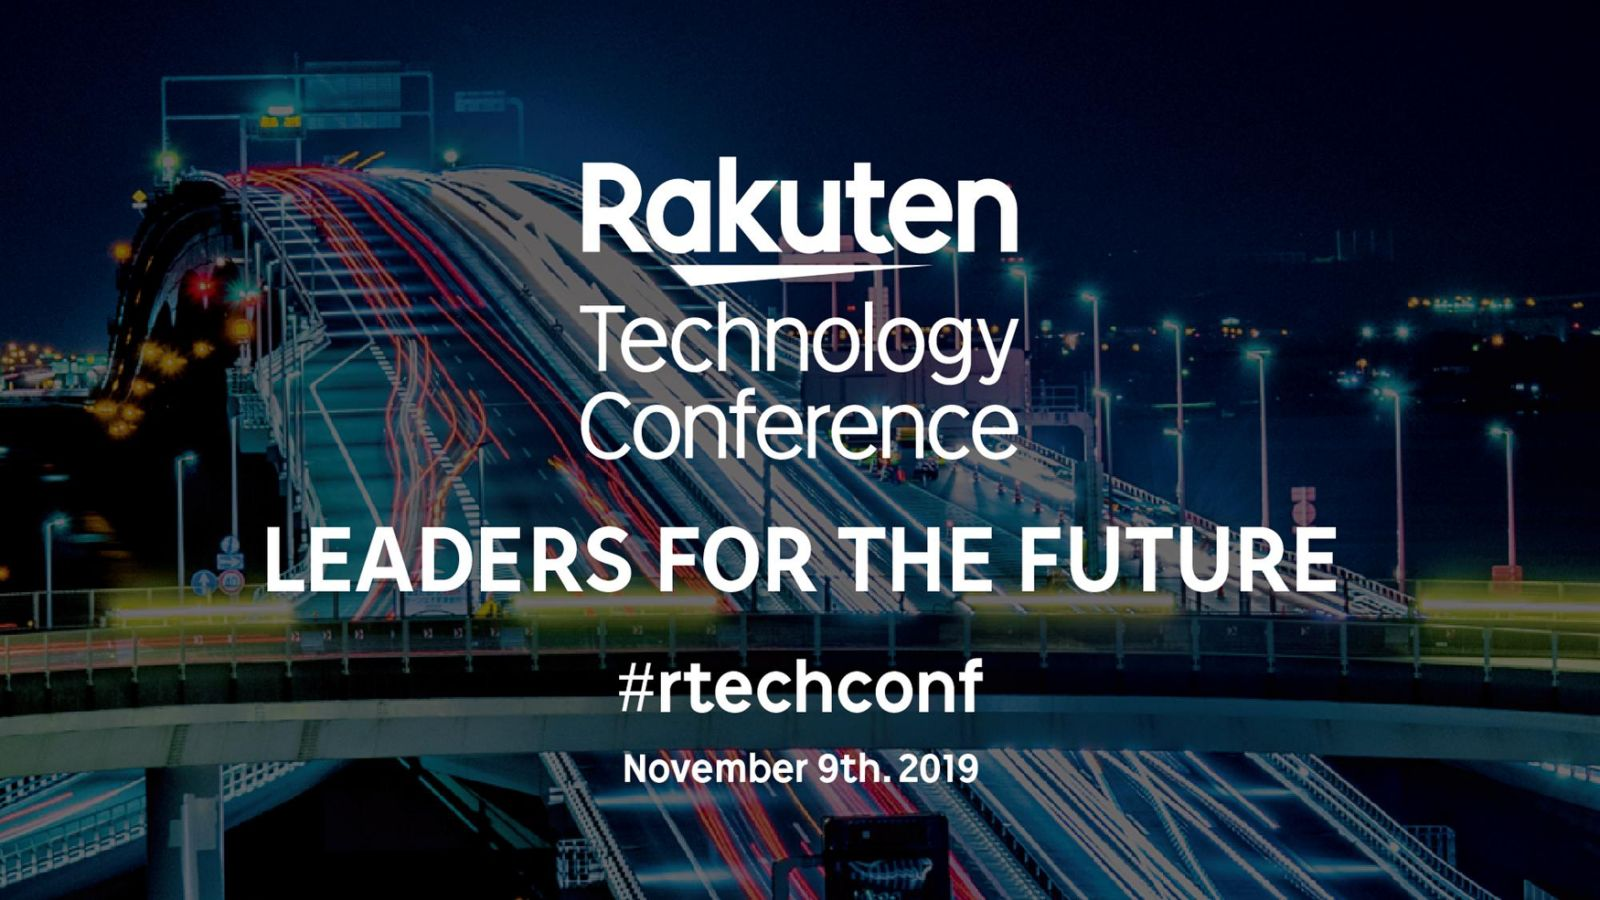 Rakuten Technology Conference 2019: Leaders for our Future